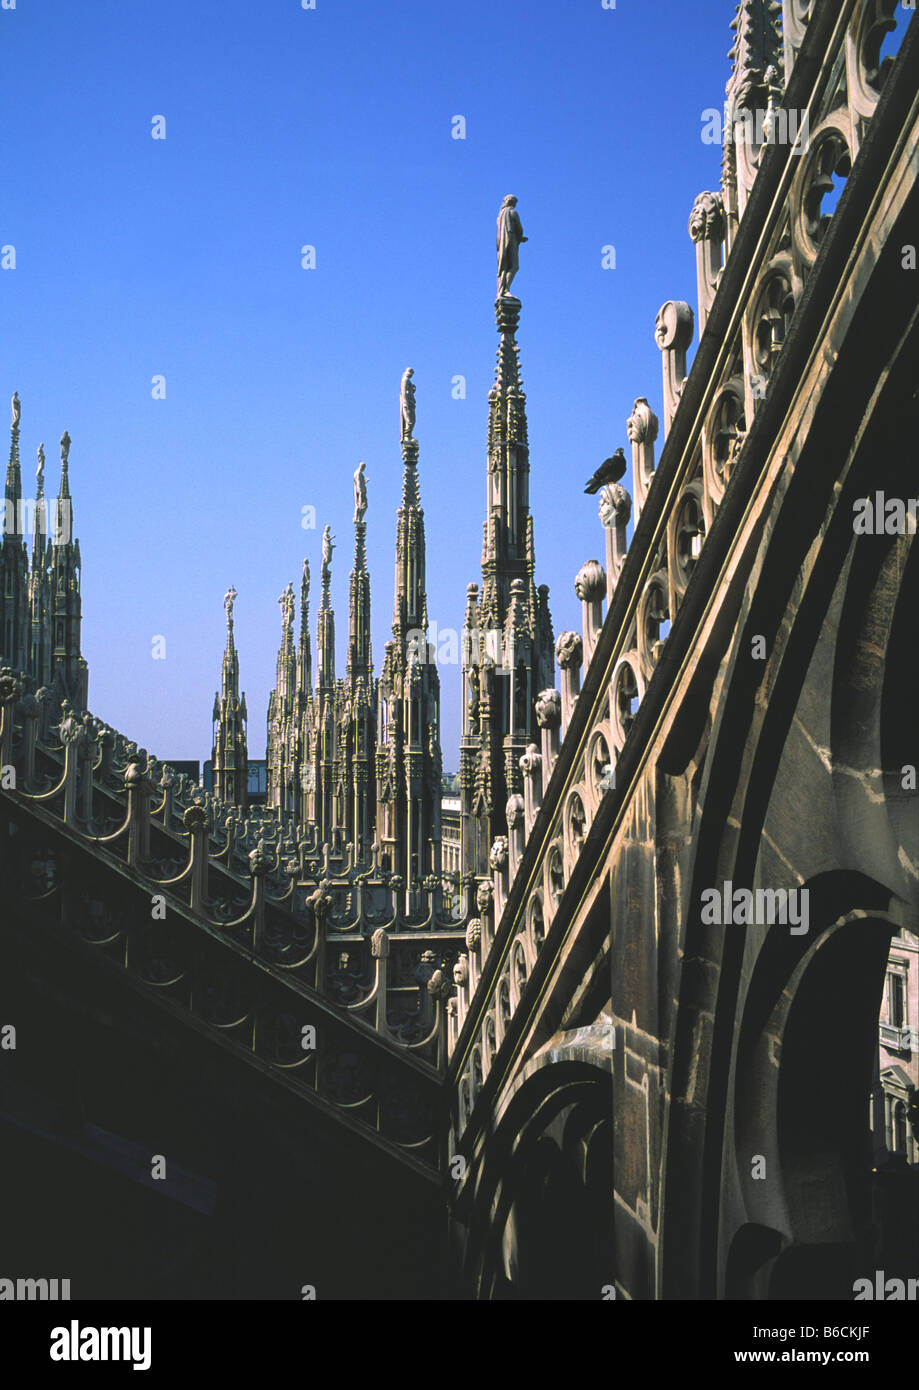 Architectural feature of cathedral, Milan Cathedral, Milan, Lombardy, Italy - Stock Image